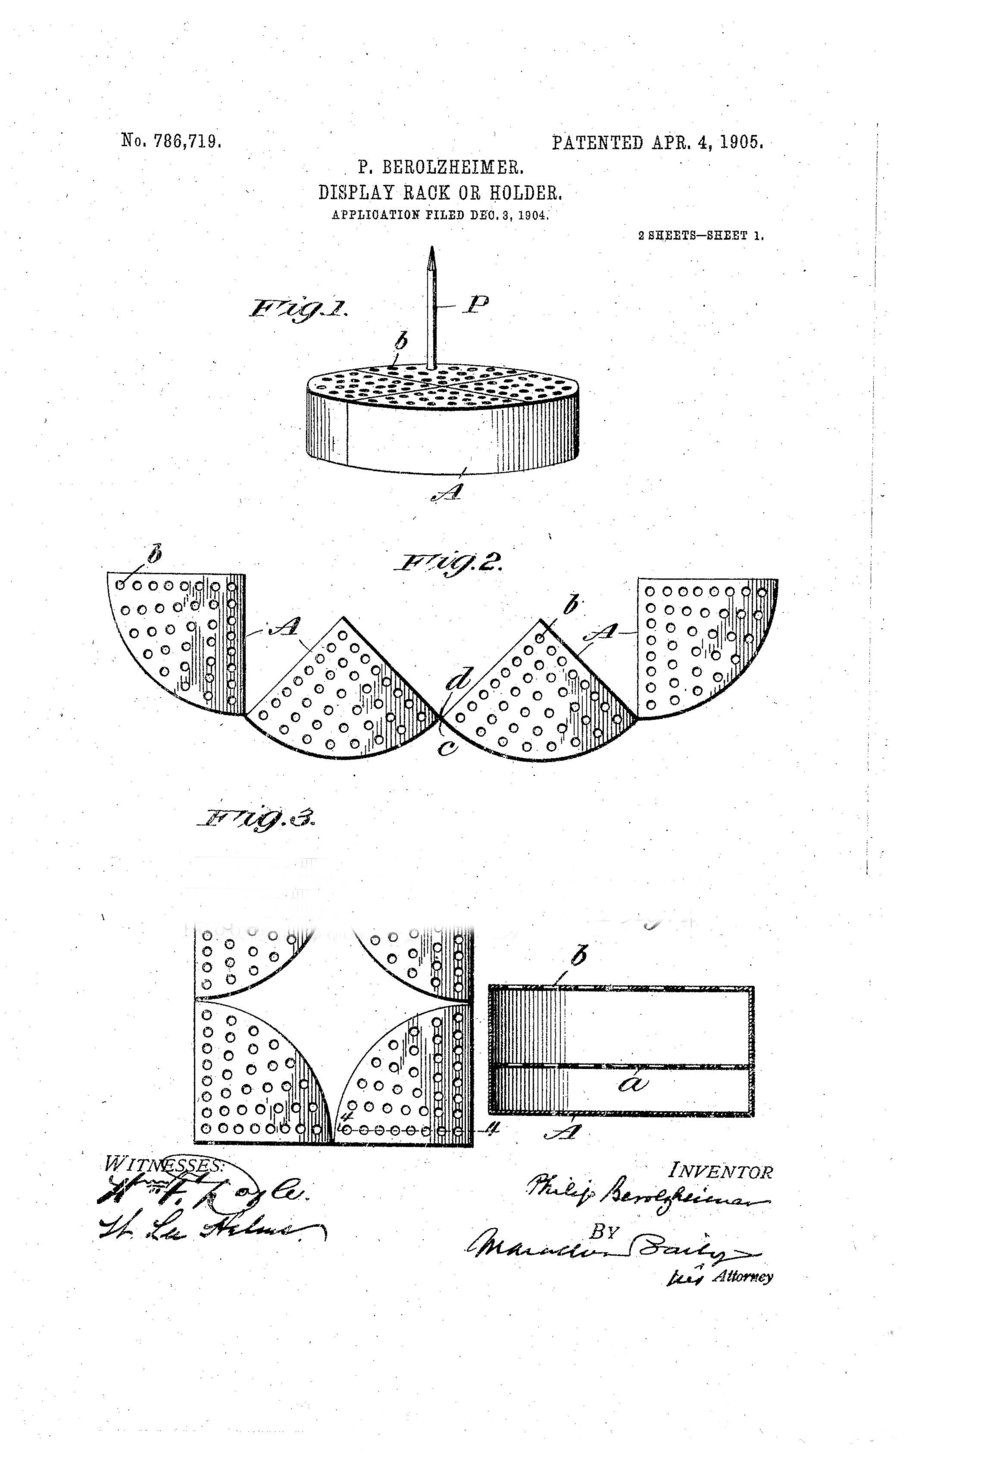 4 - PB 1905 Pencil Display Patent_Page_1.jpg